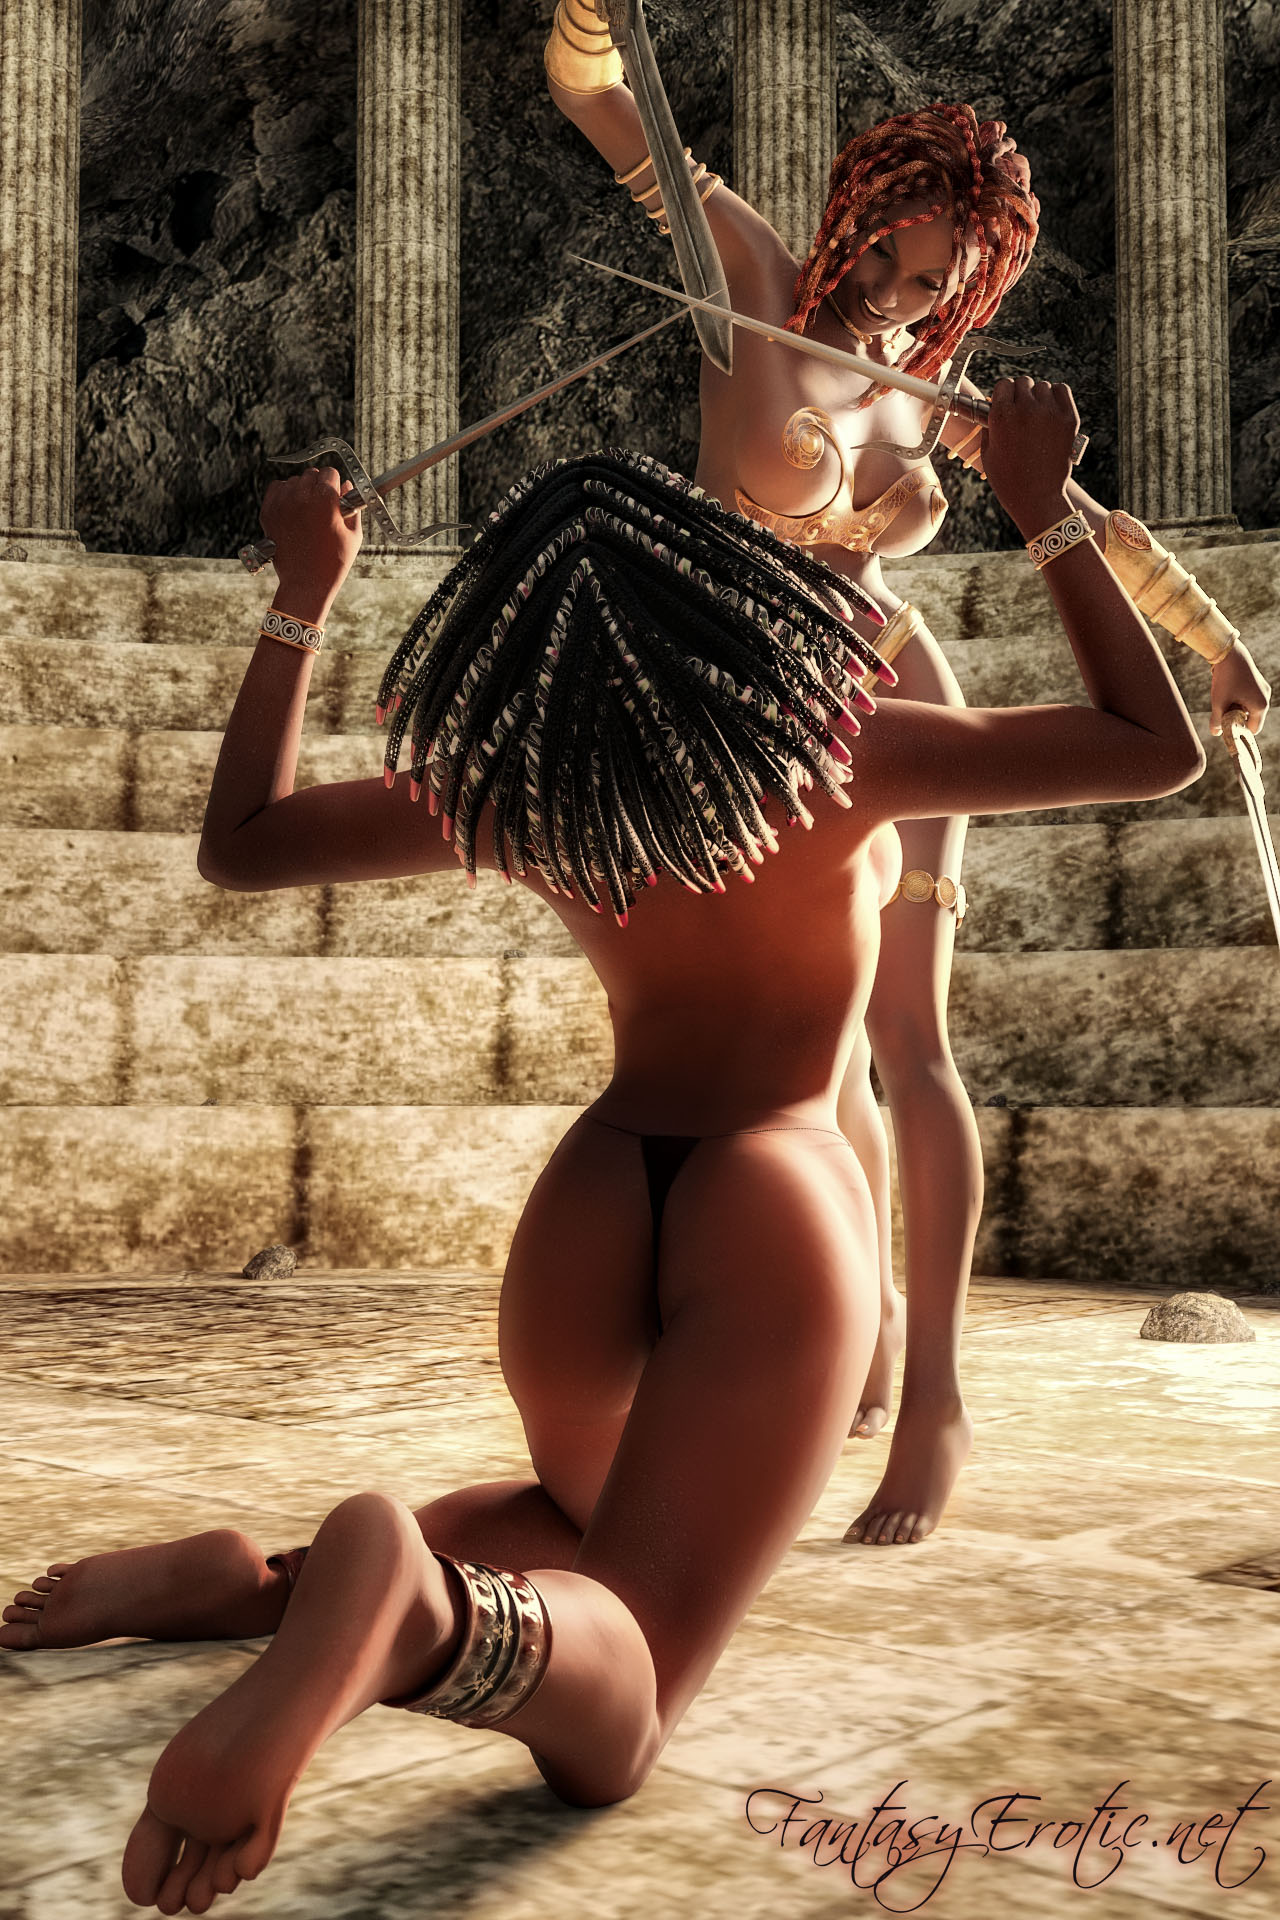 Erotic warrior woman porn pictures